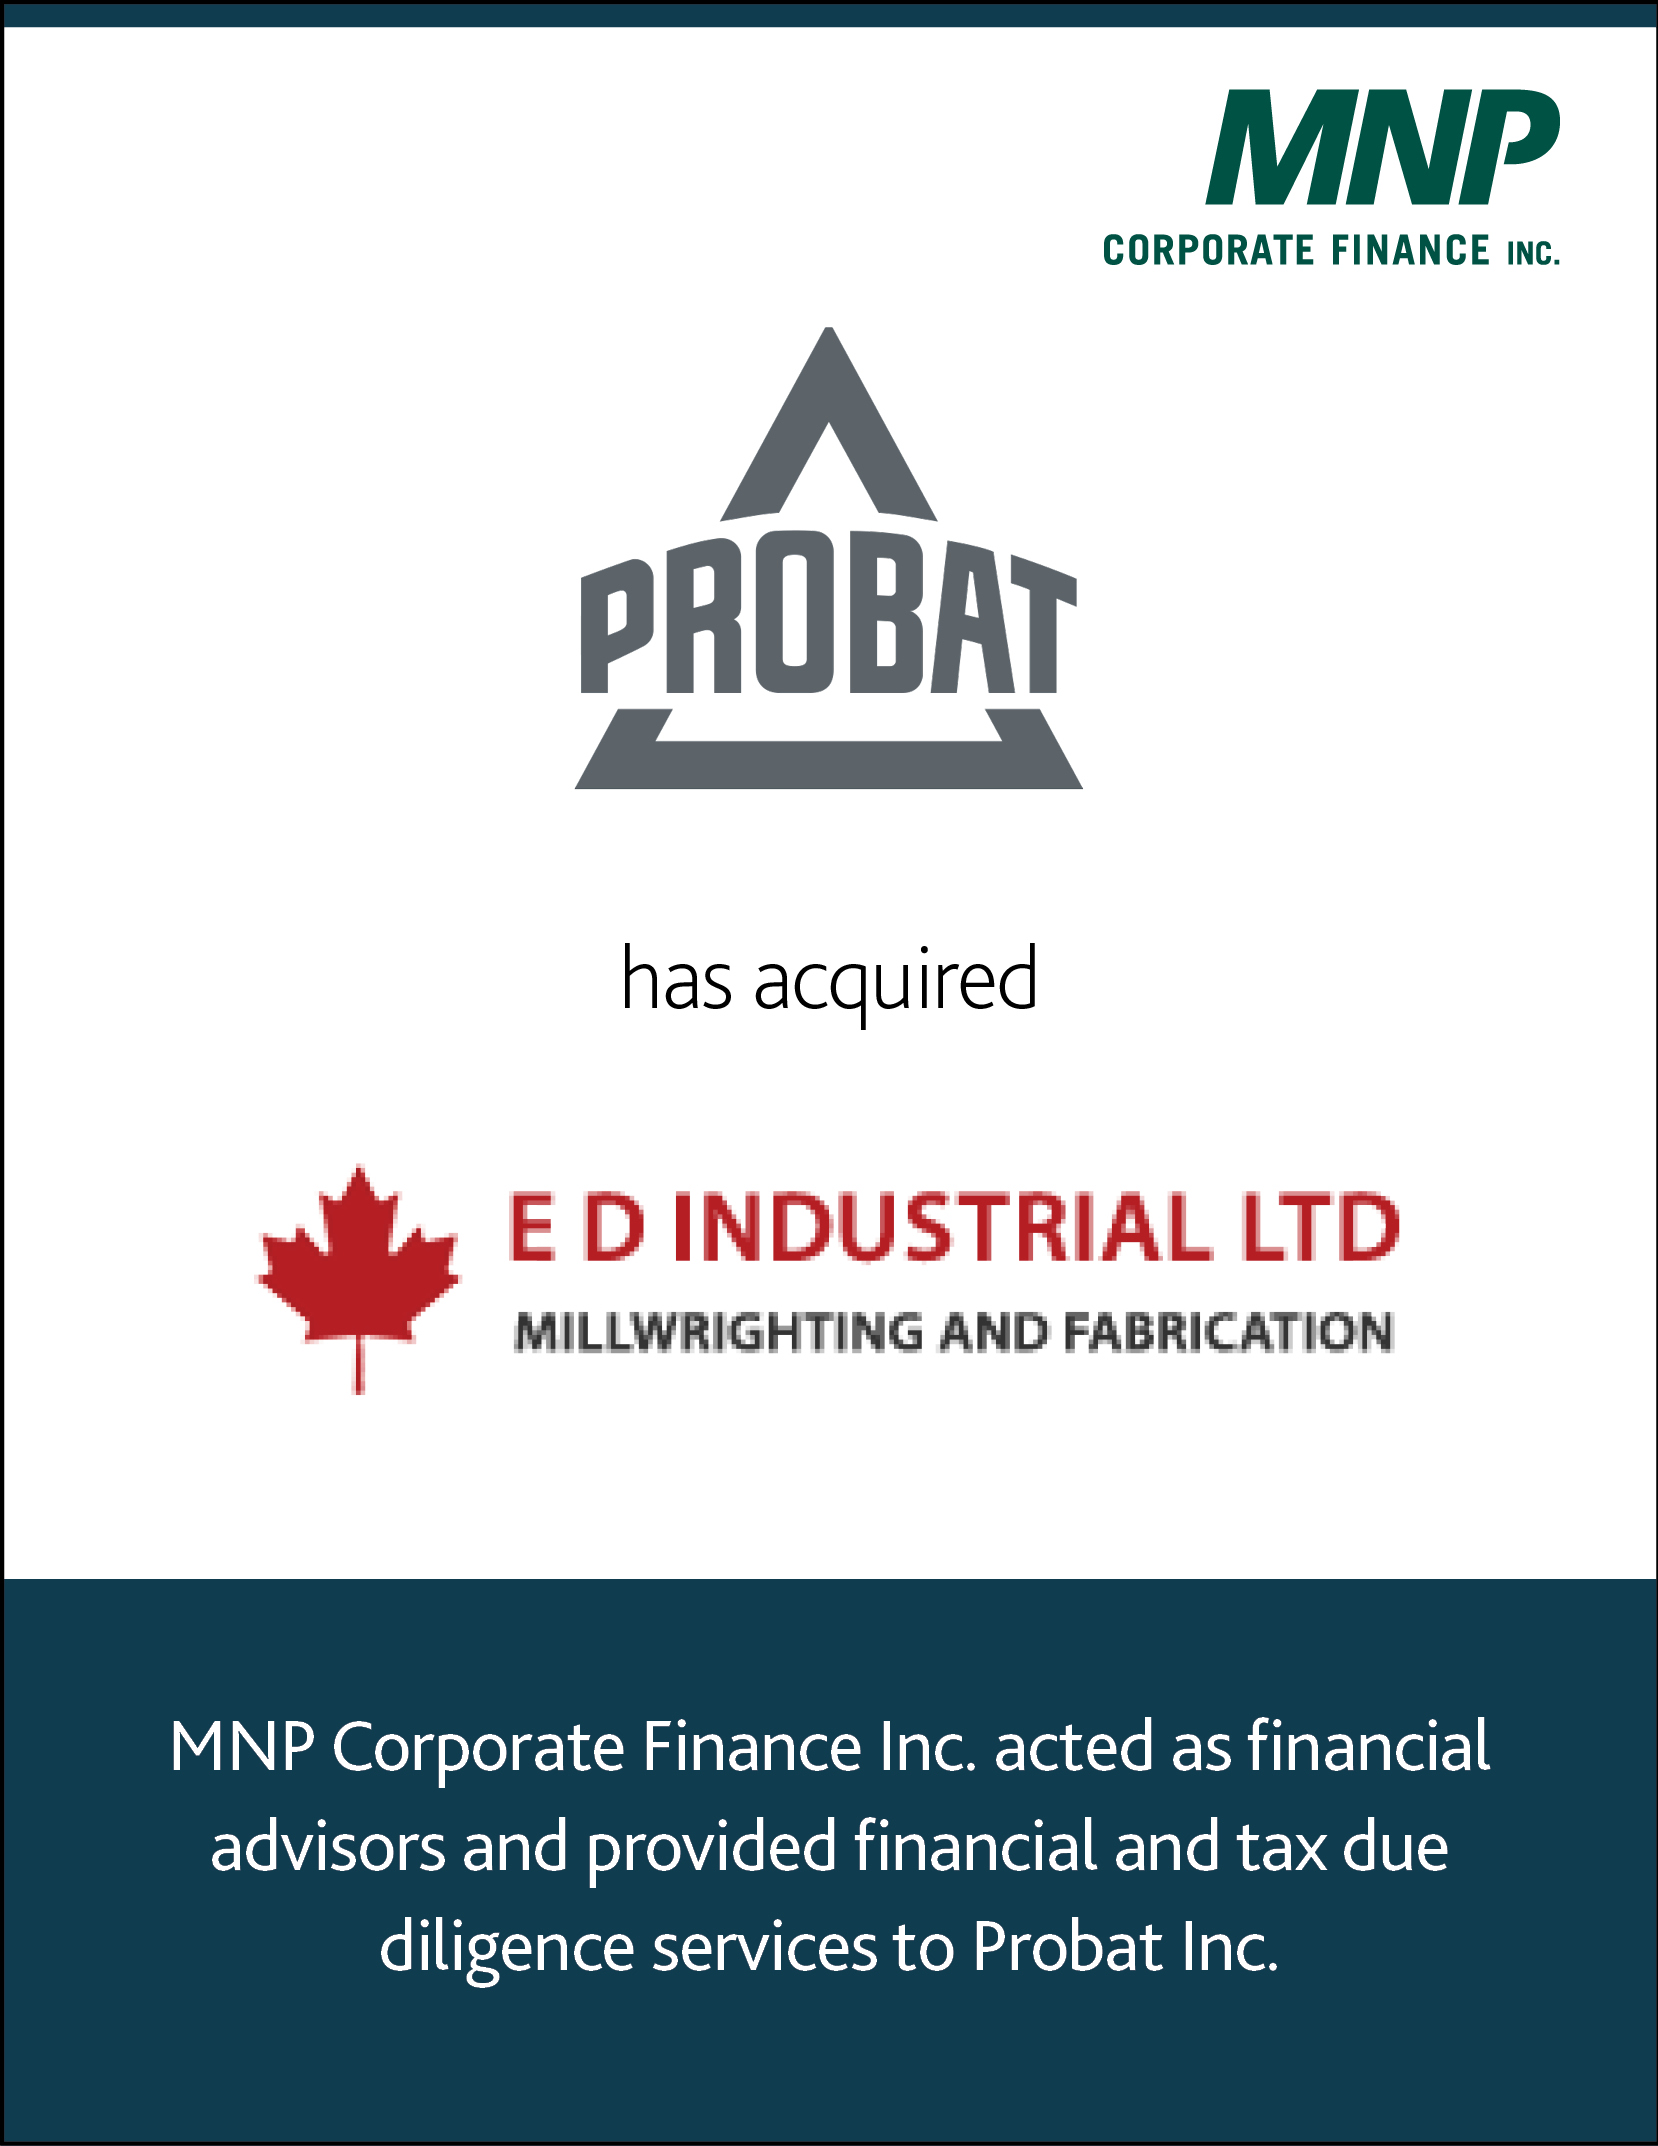 Probat Inc., a subsidiary of the Probat Group, has acquired E D Industrial Ltd. and E D Industrial USA, Inc.